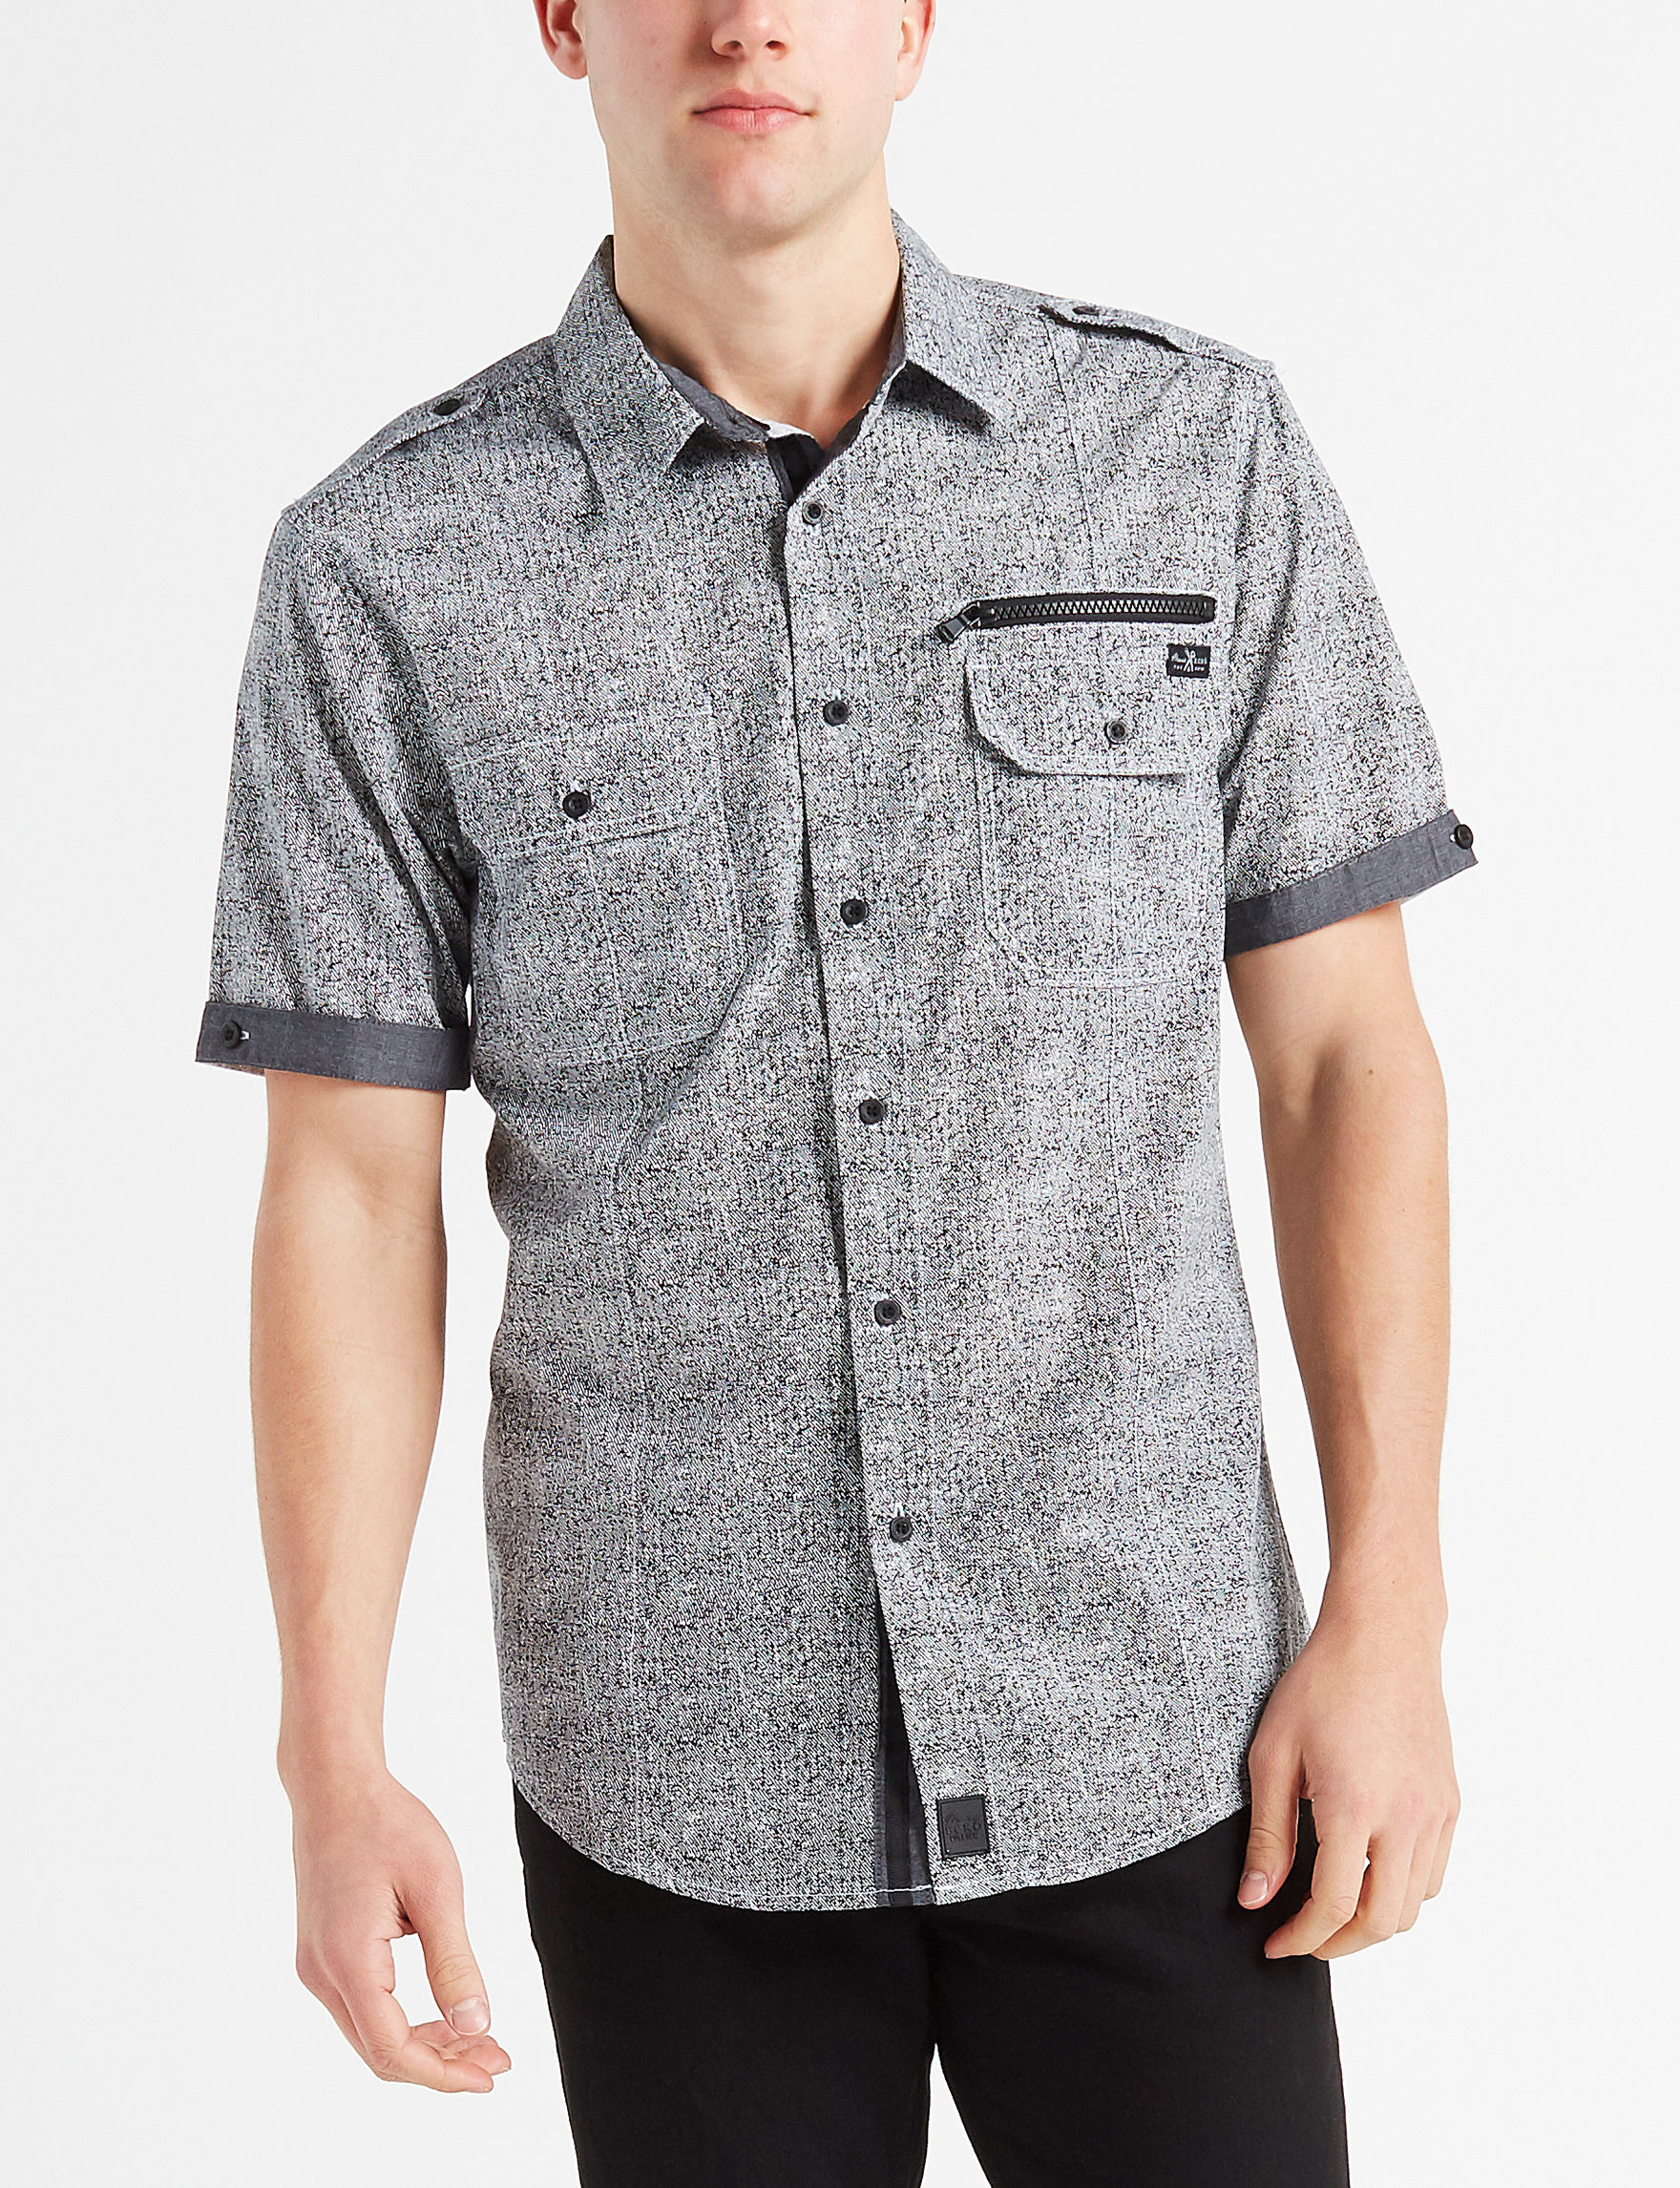 Marc Ecko Grey / Black Casual Button Down Shirts